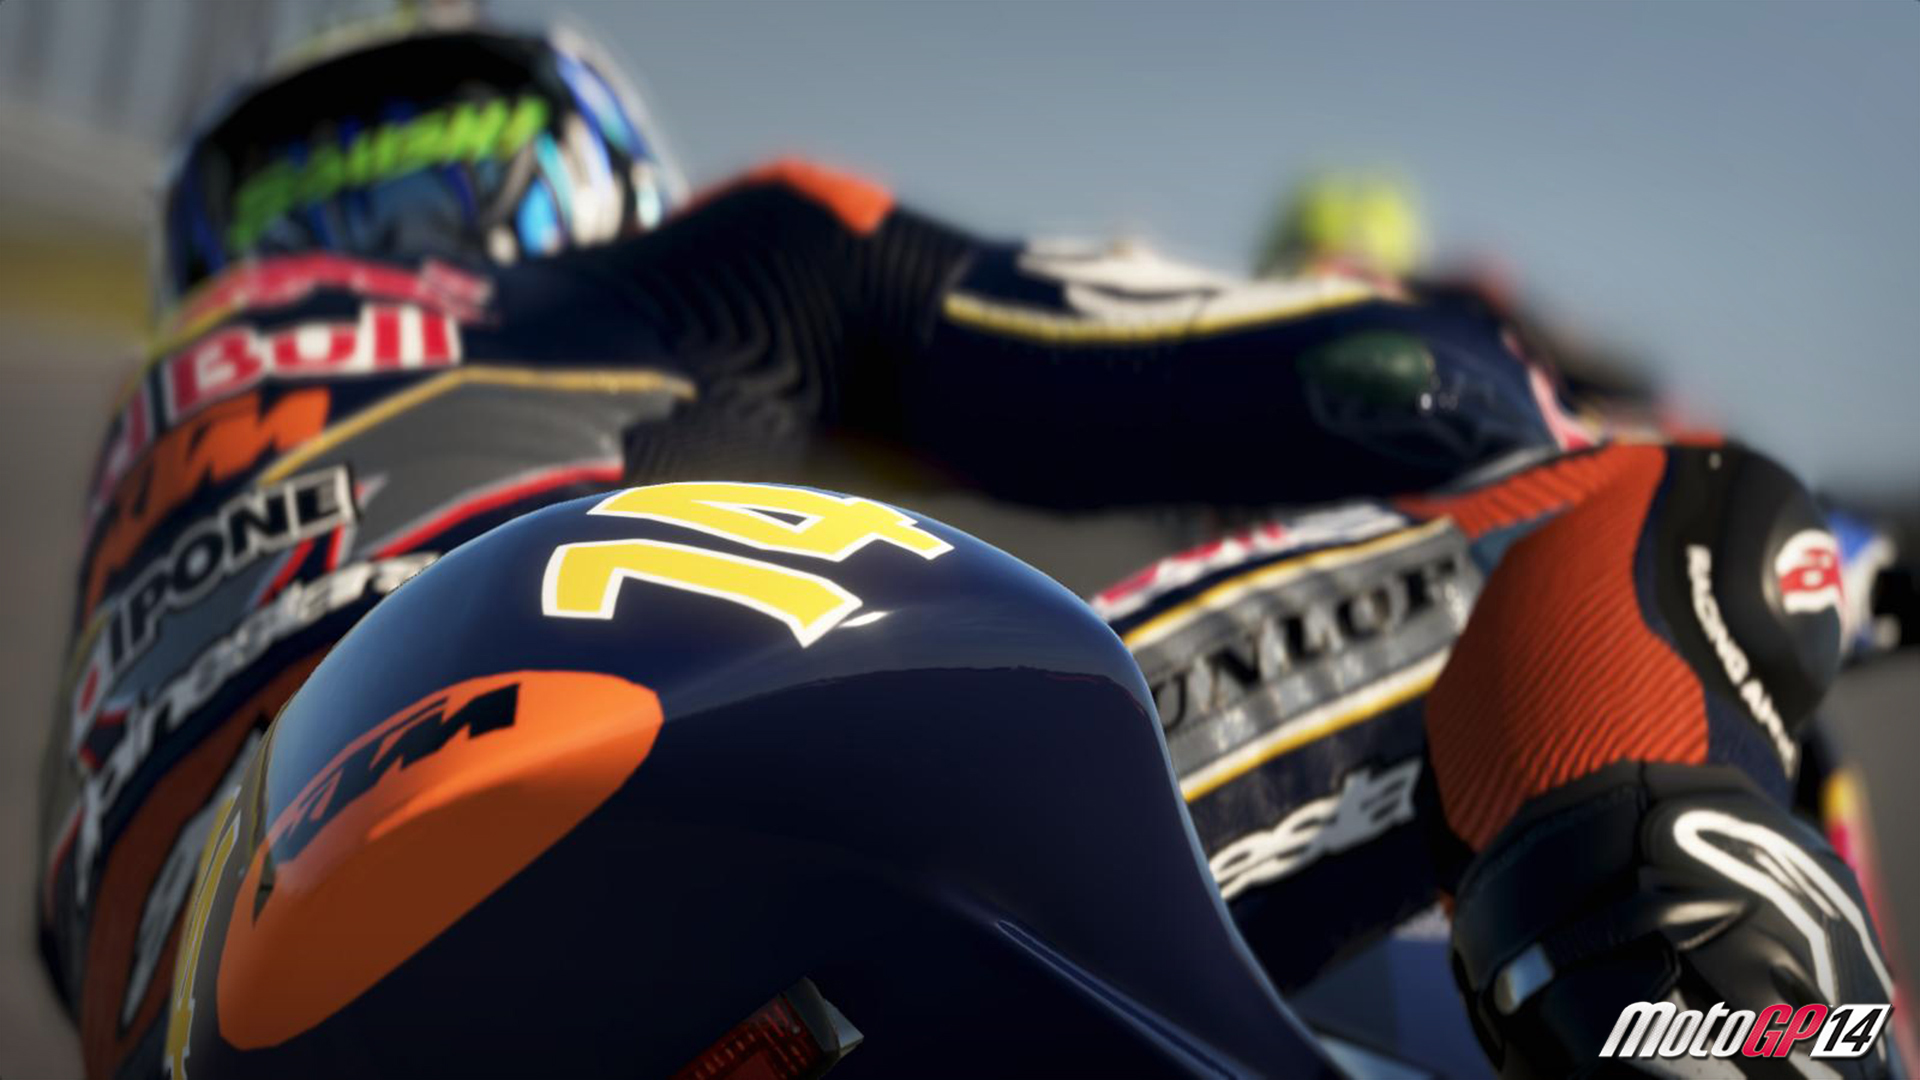 MotoGP14 Red Bull Rookies Cup DLC screenshot